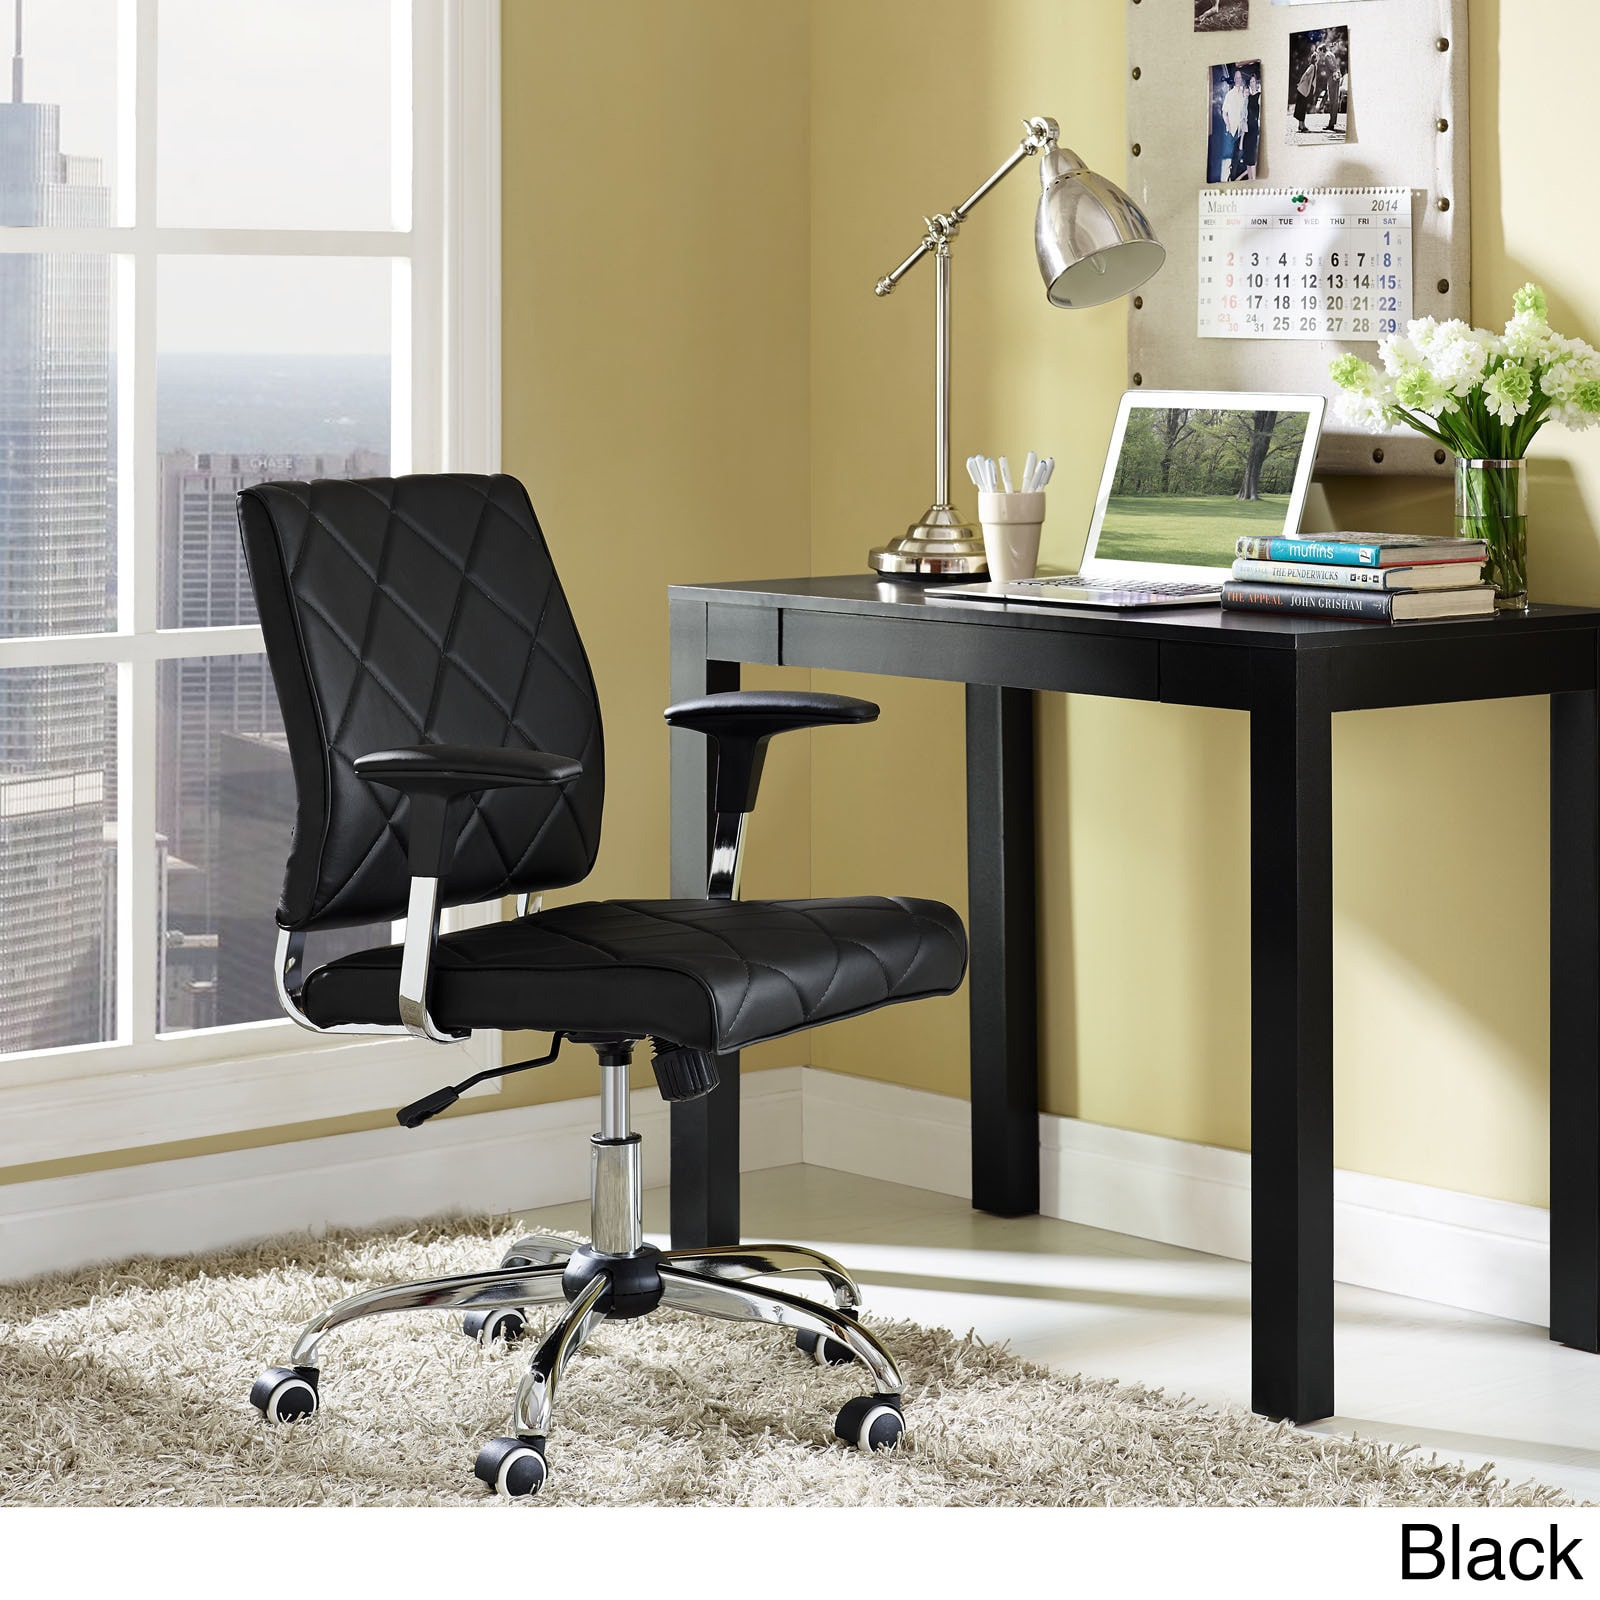 office chair overstock eio push lattice diamond tufted vinyl